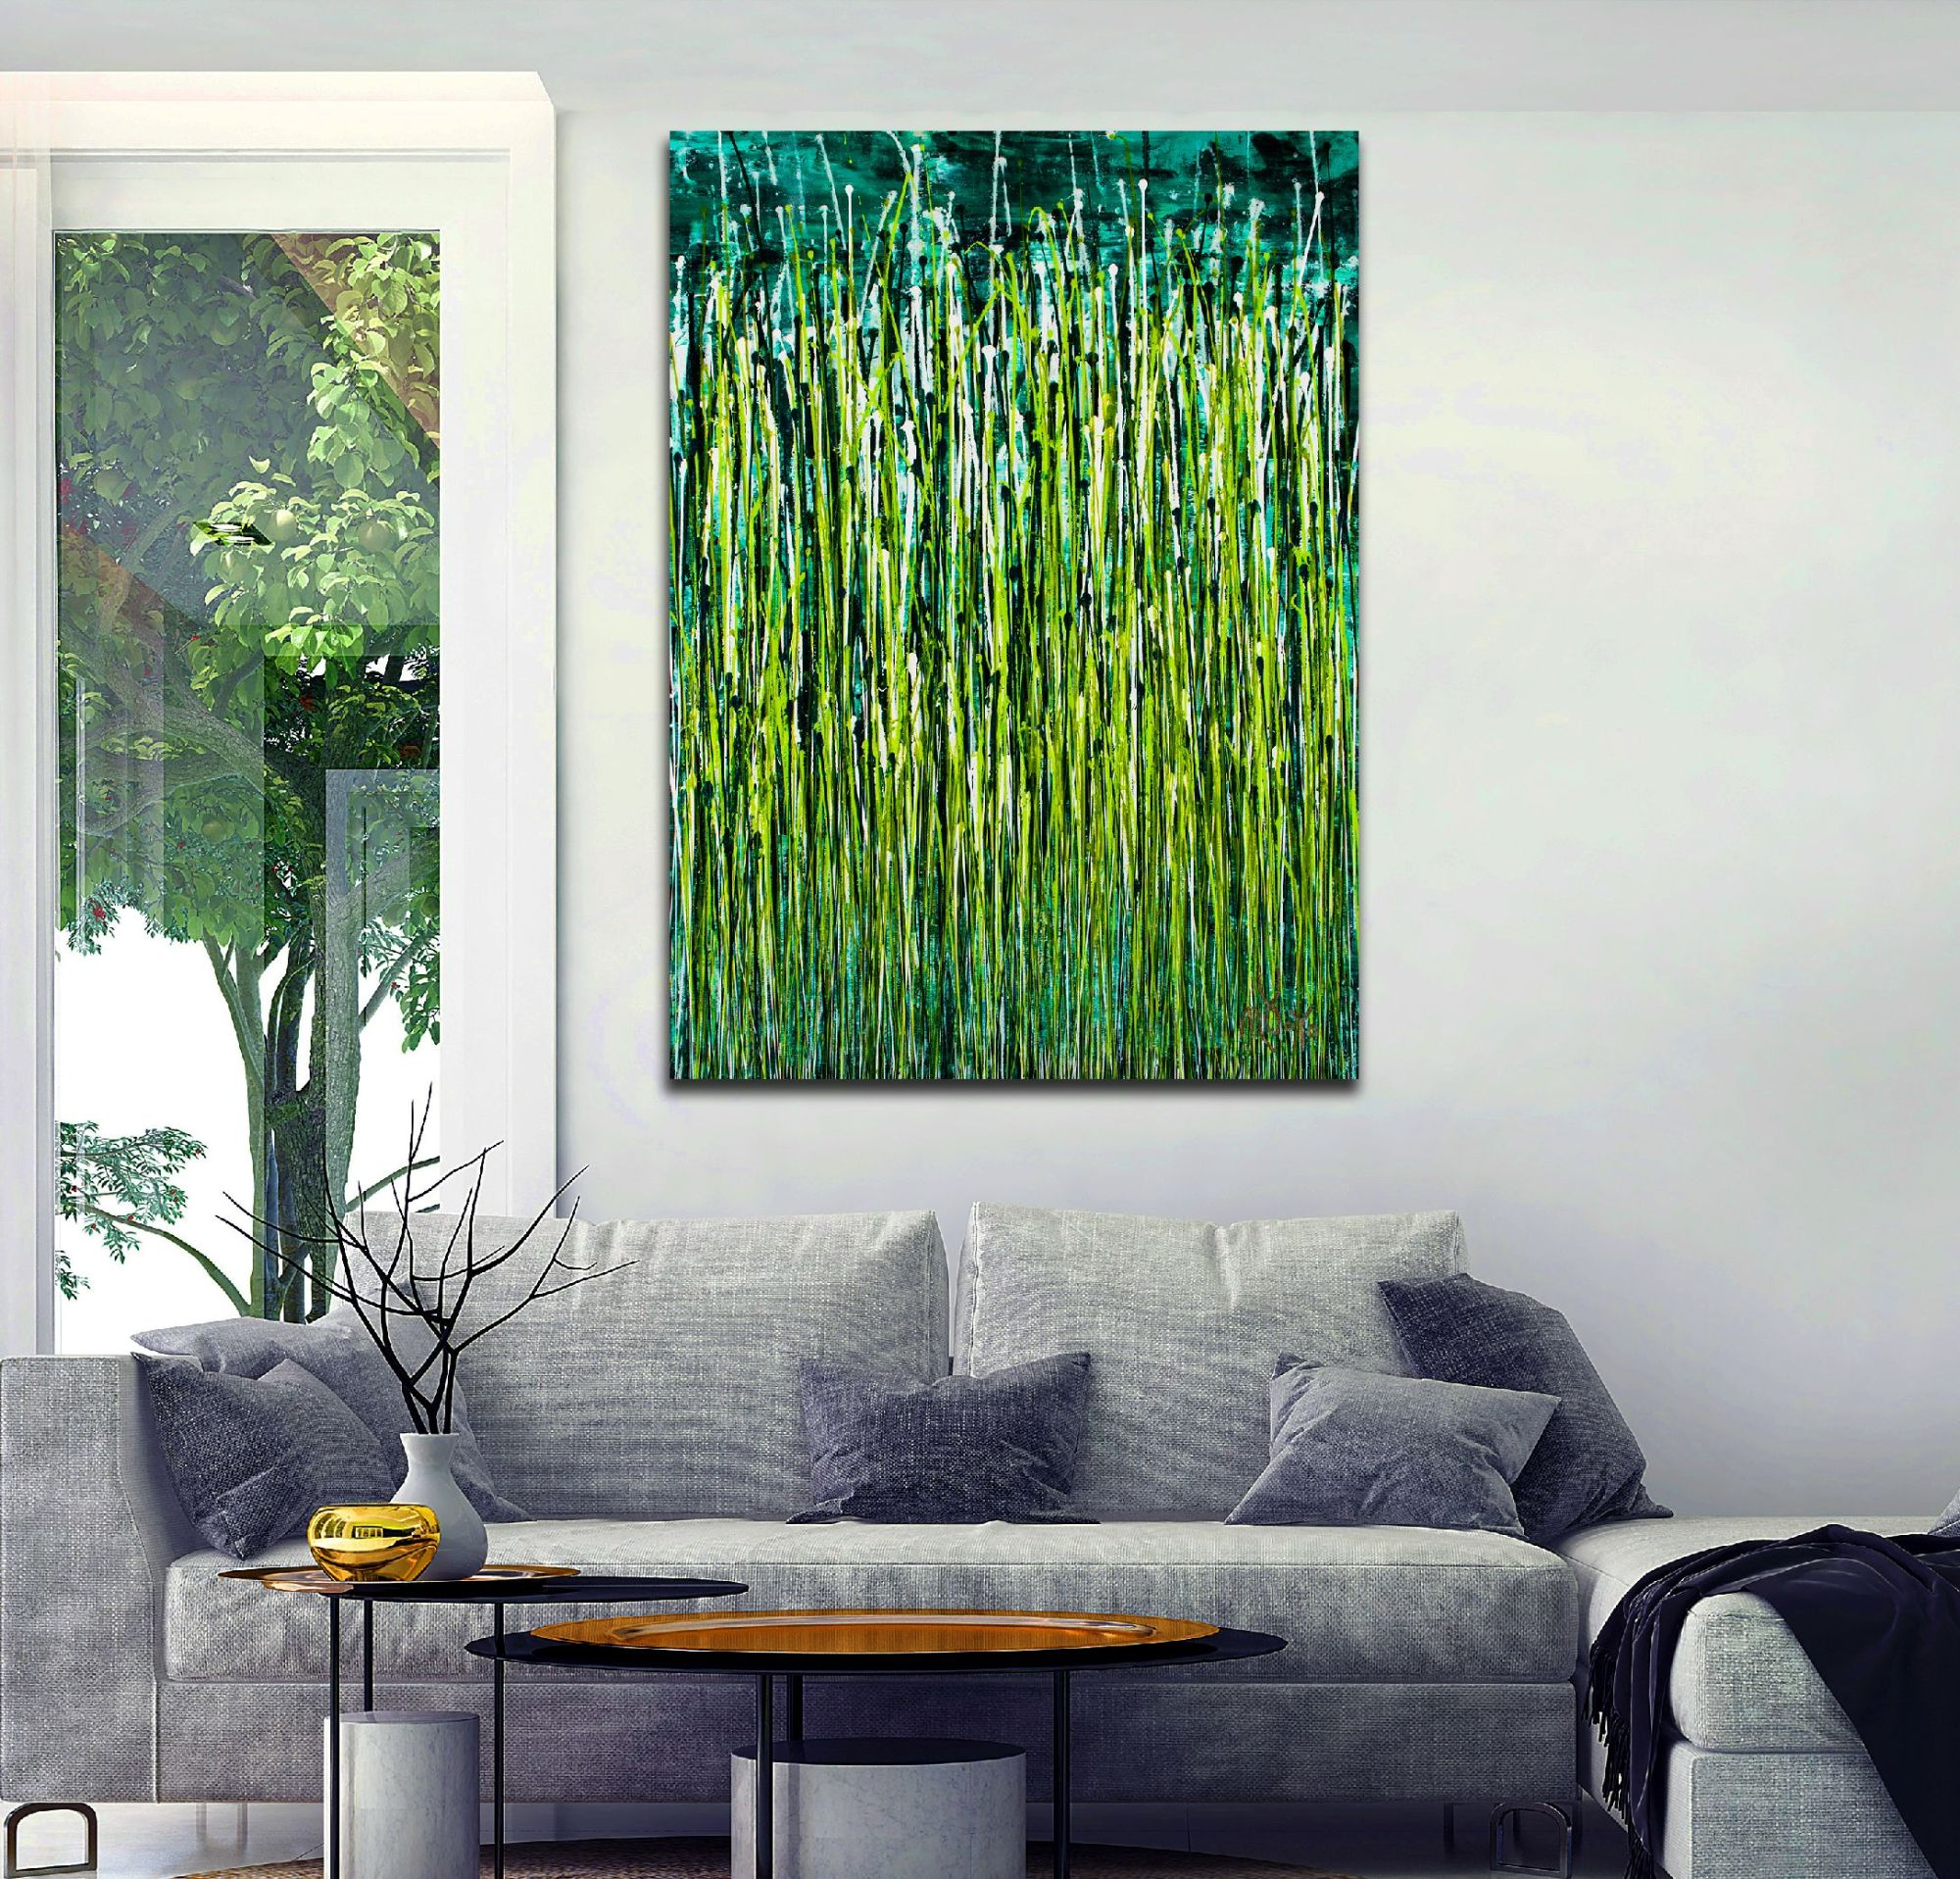 Room example / Evergreen Garden (2020) by Nestor Toro / 35x46 inches